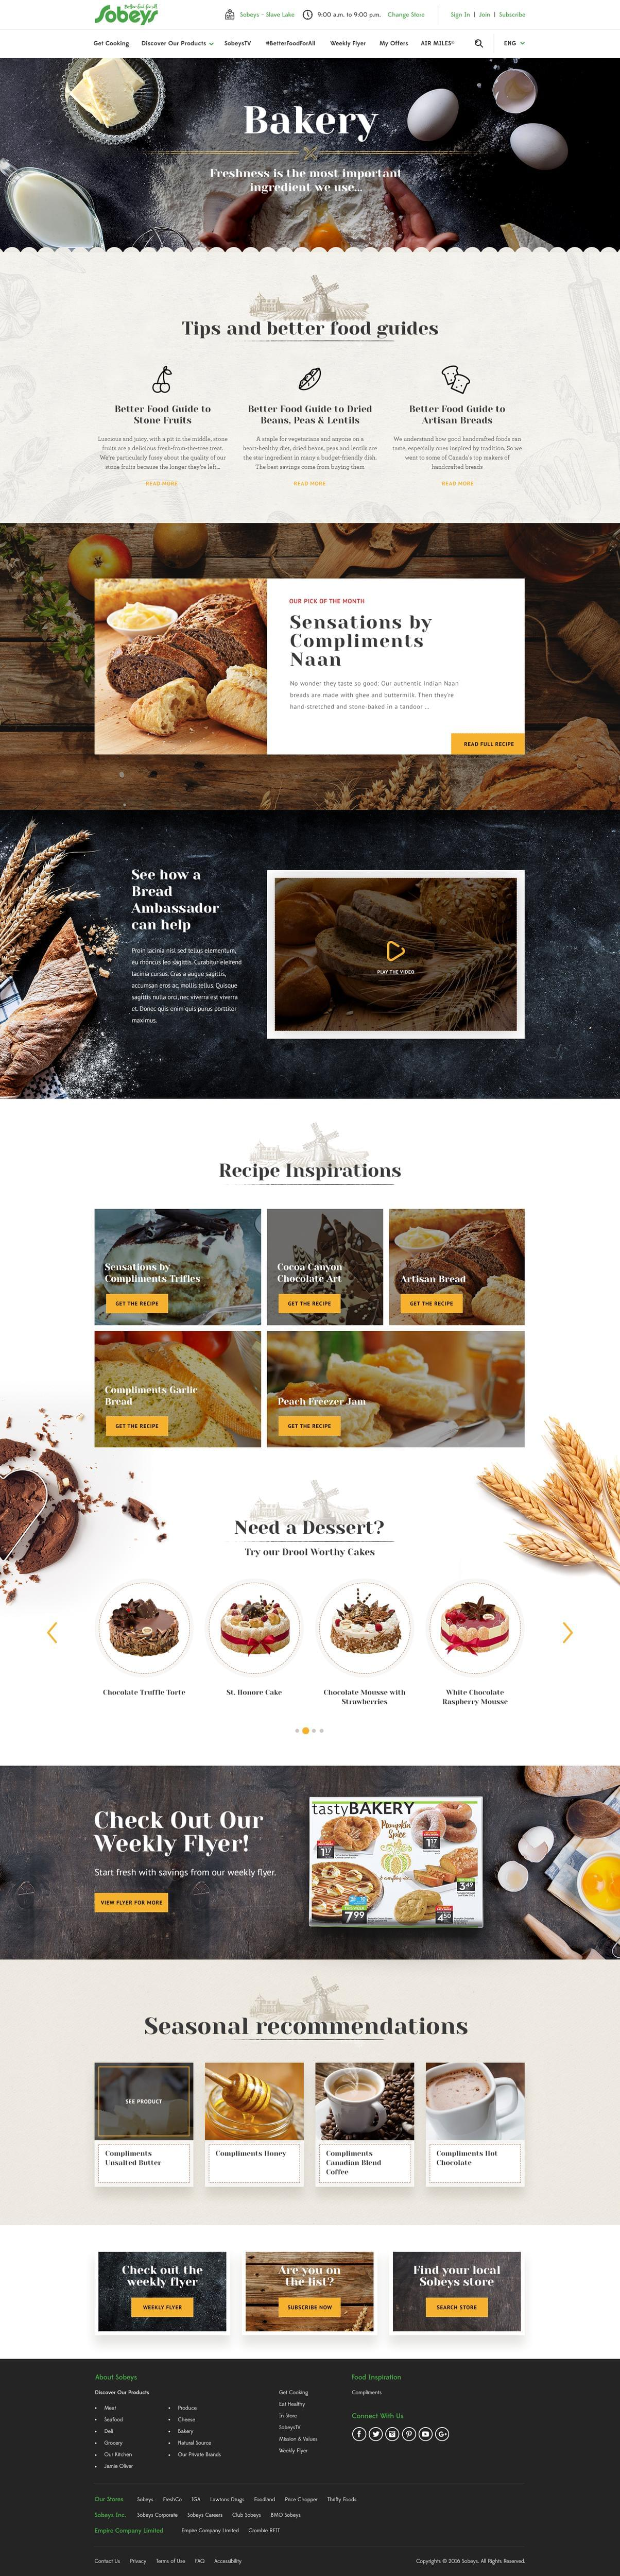 Creative & Professional One Page Web Design by yogags - 112124